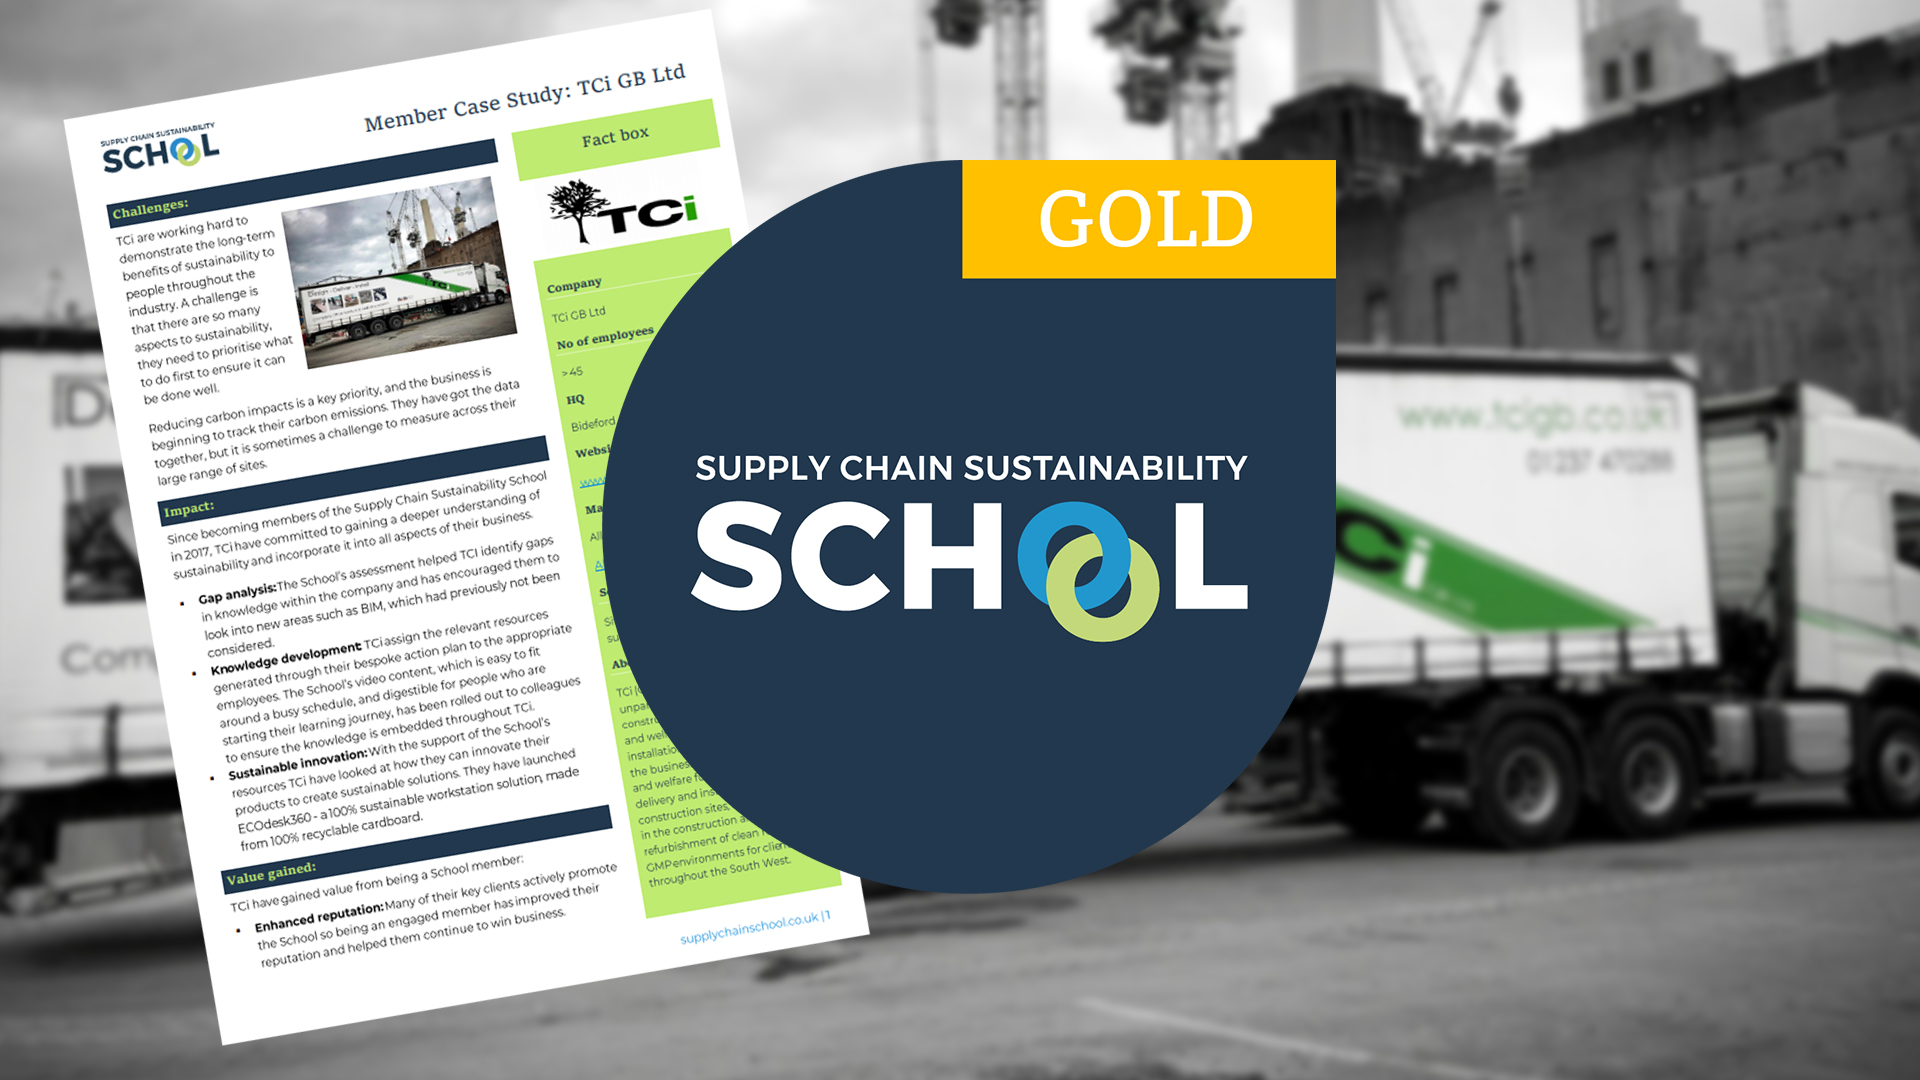 Achieving GOLD with Supply Chain Sustainability School